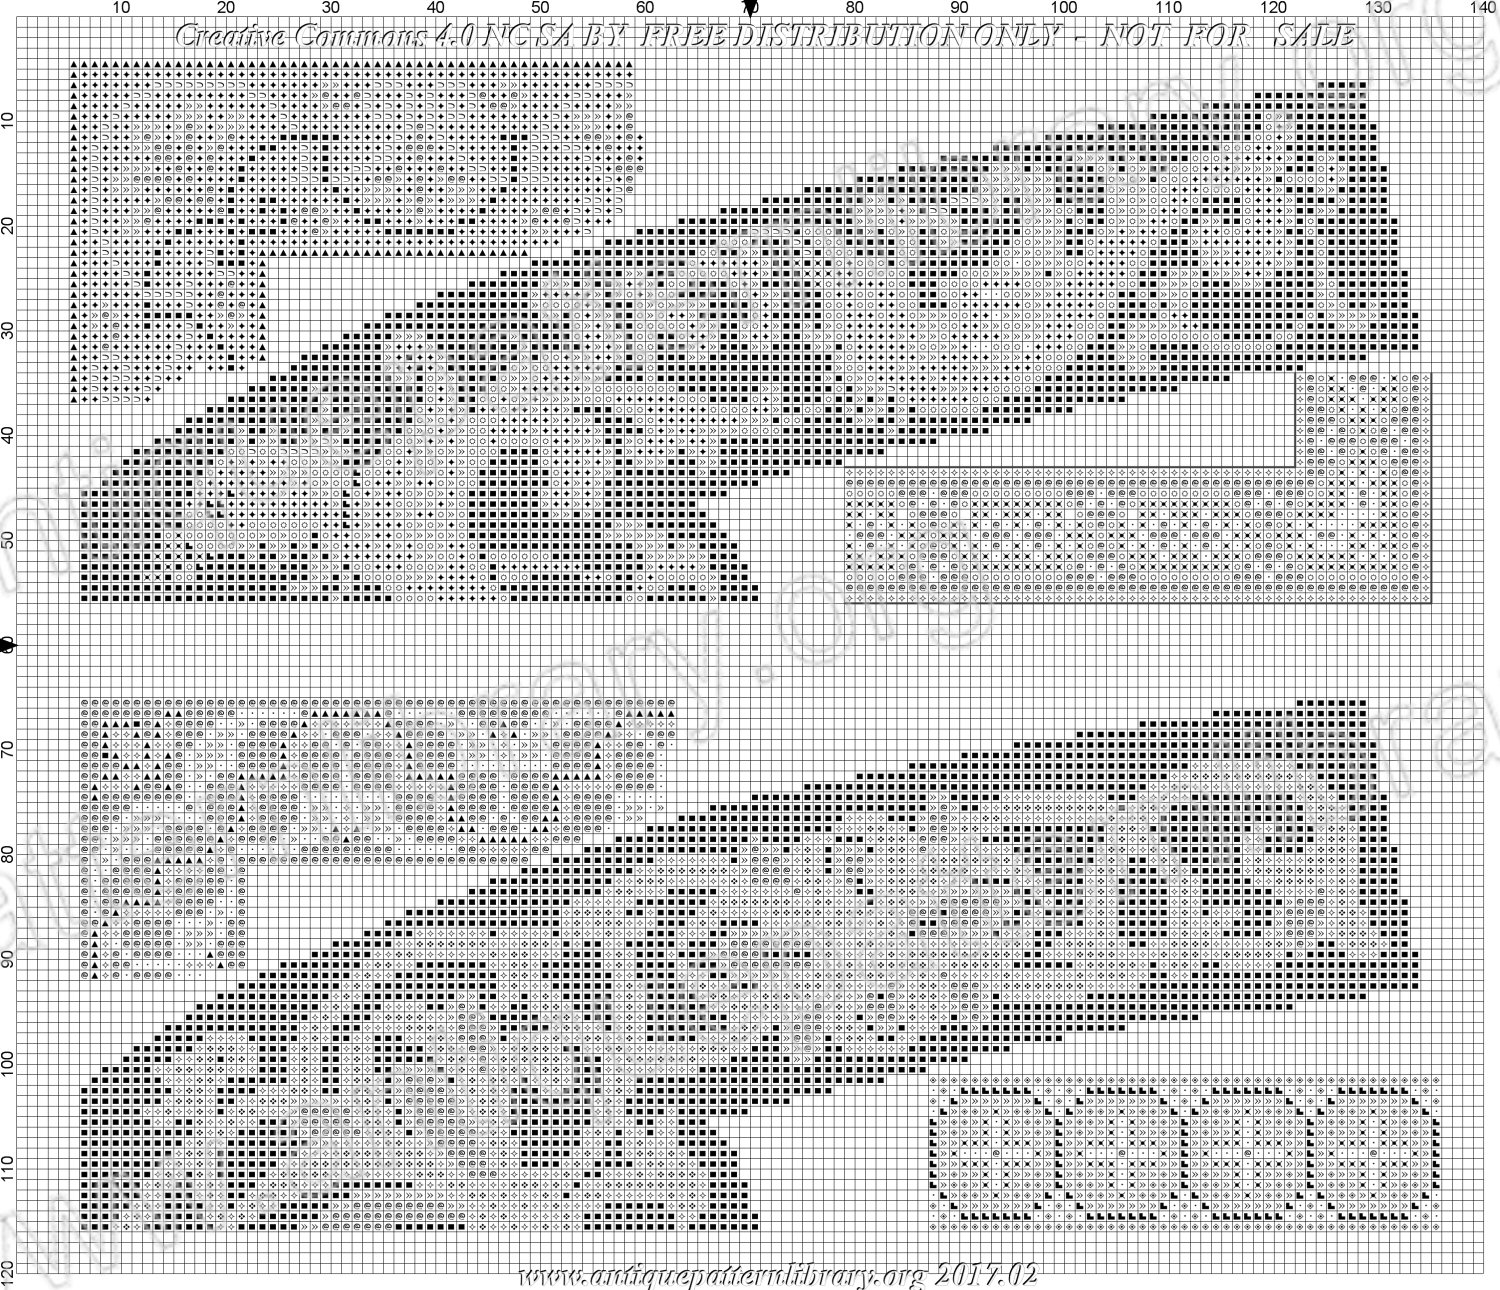 H-EU001 Embroidery patterns - Dessins de broderie - Neueste Stickvorlagen